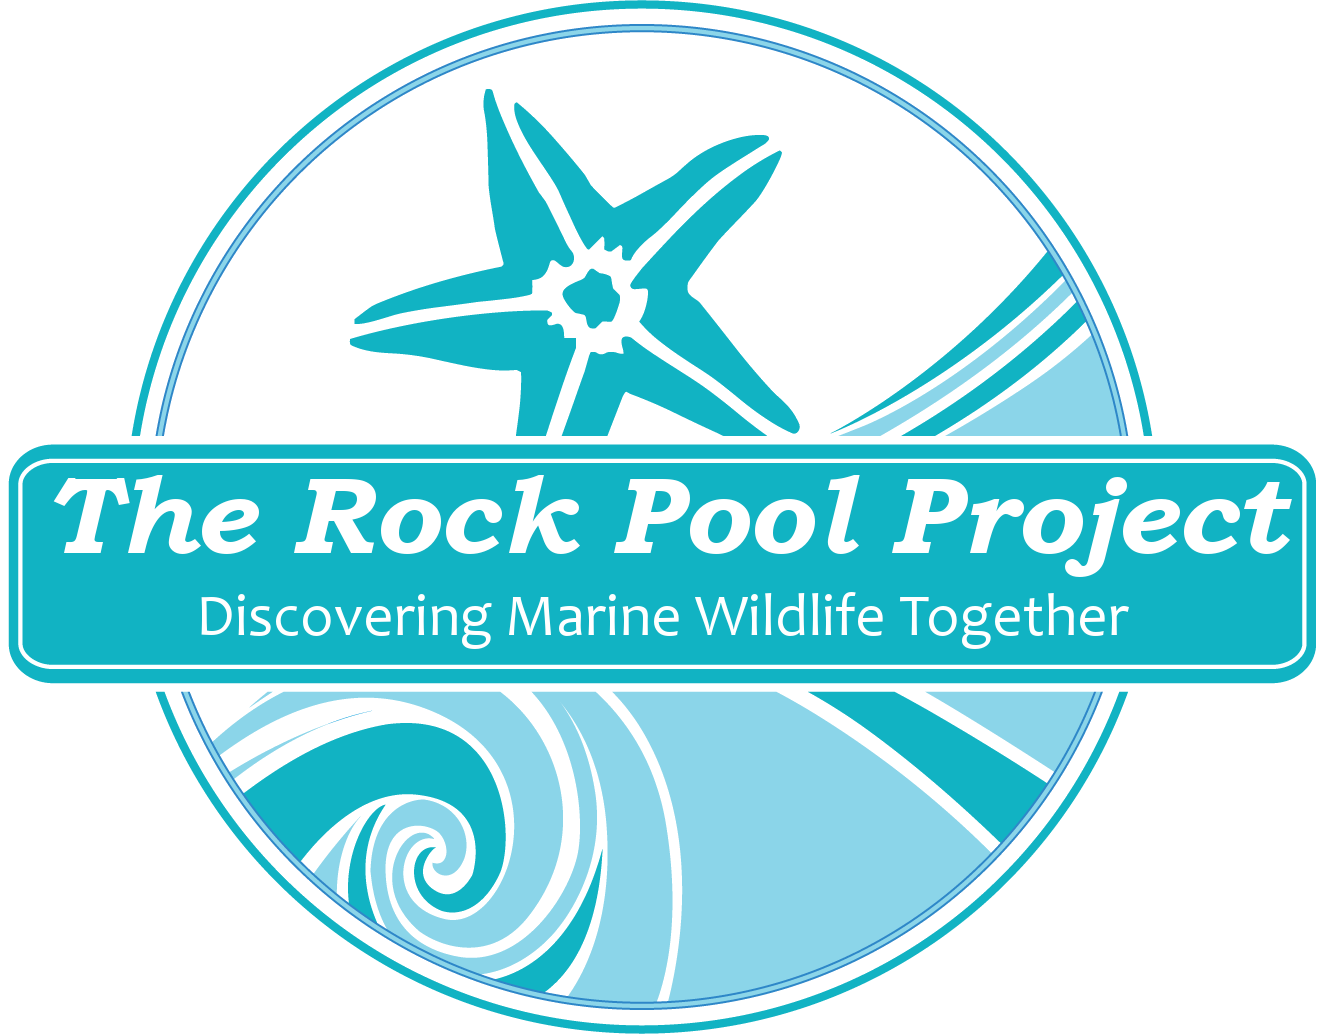 The Rock Pool Project logo